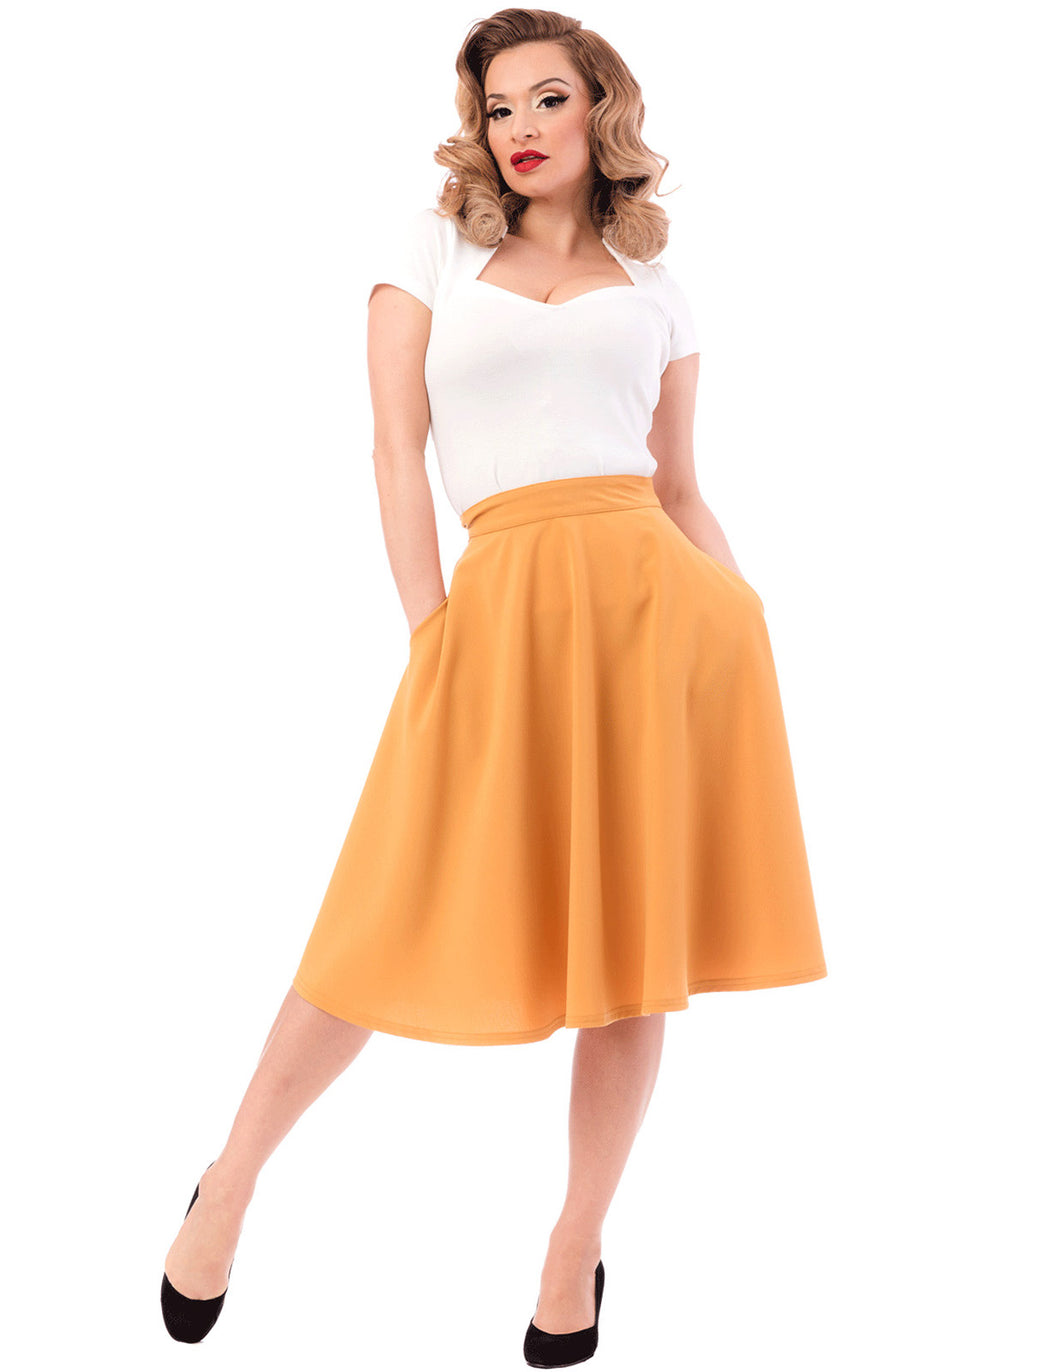 Pocket Circle Skirt in Mustard